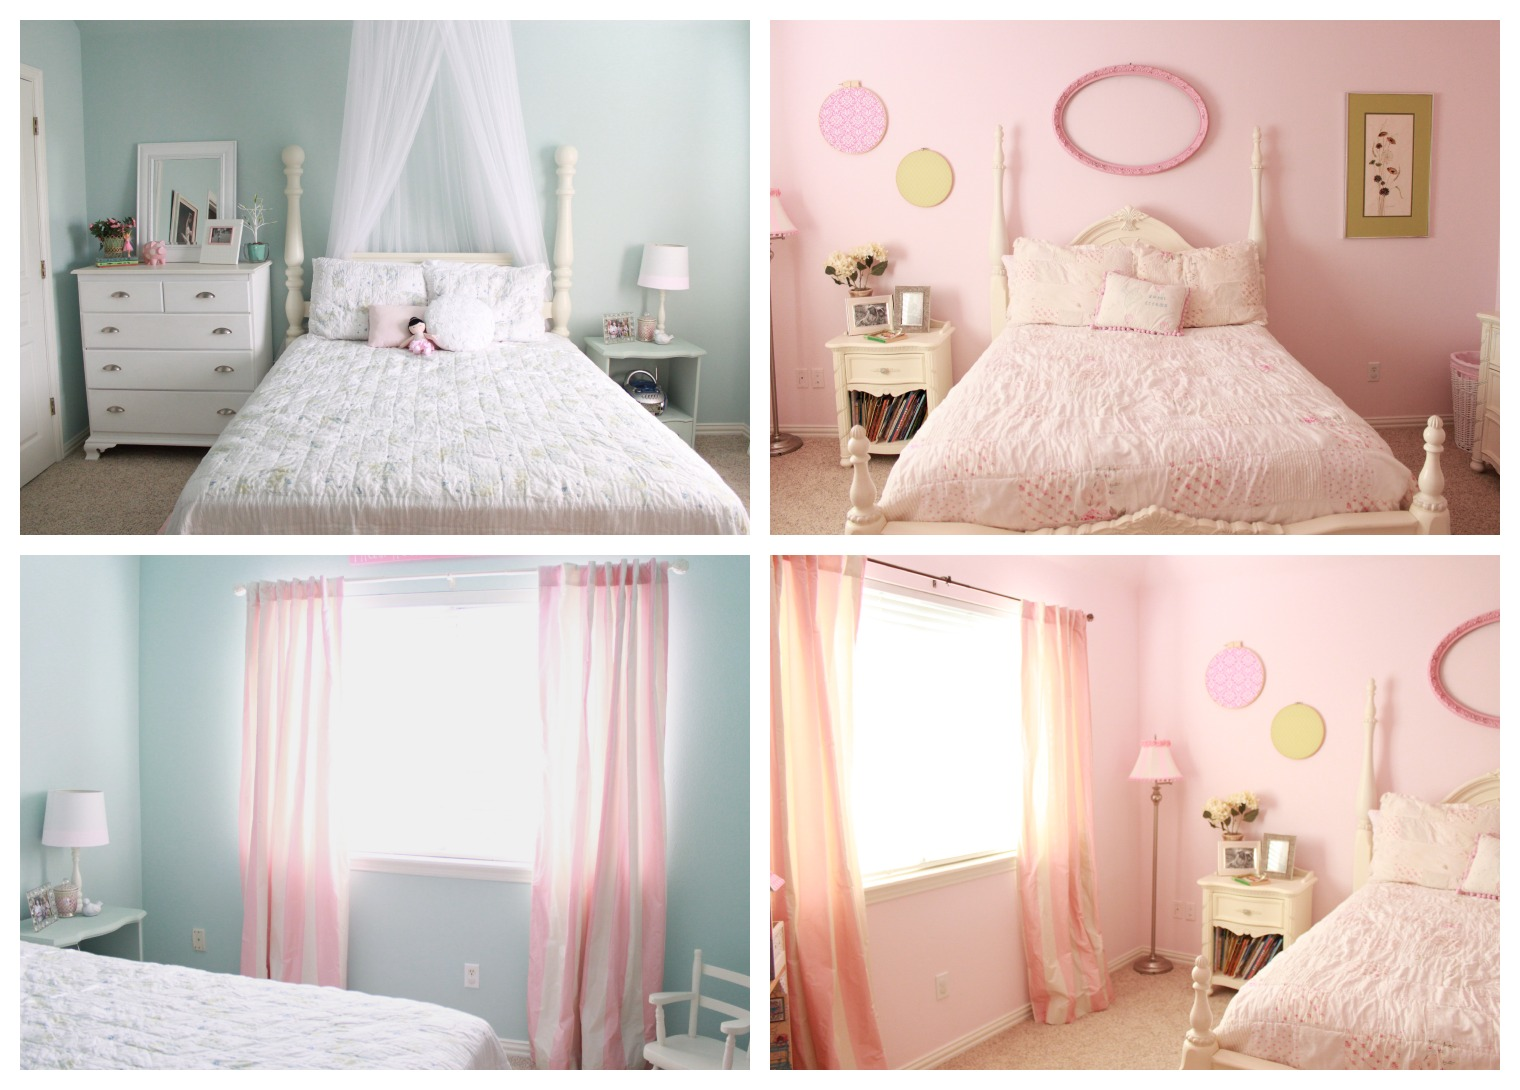 Crafty Texas Girls: Pretty In Pink: Shabby Chic Bedroom